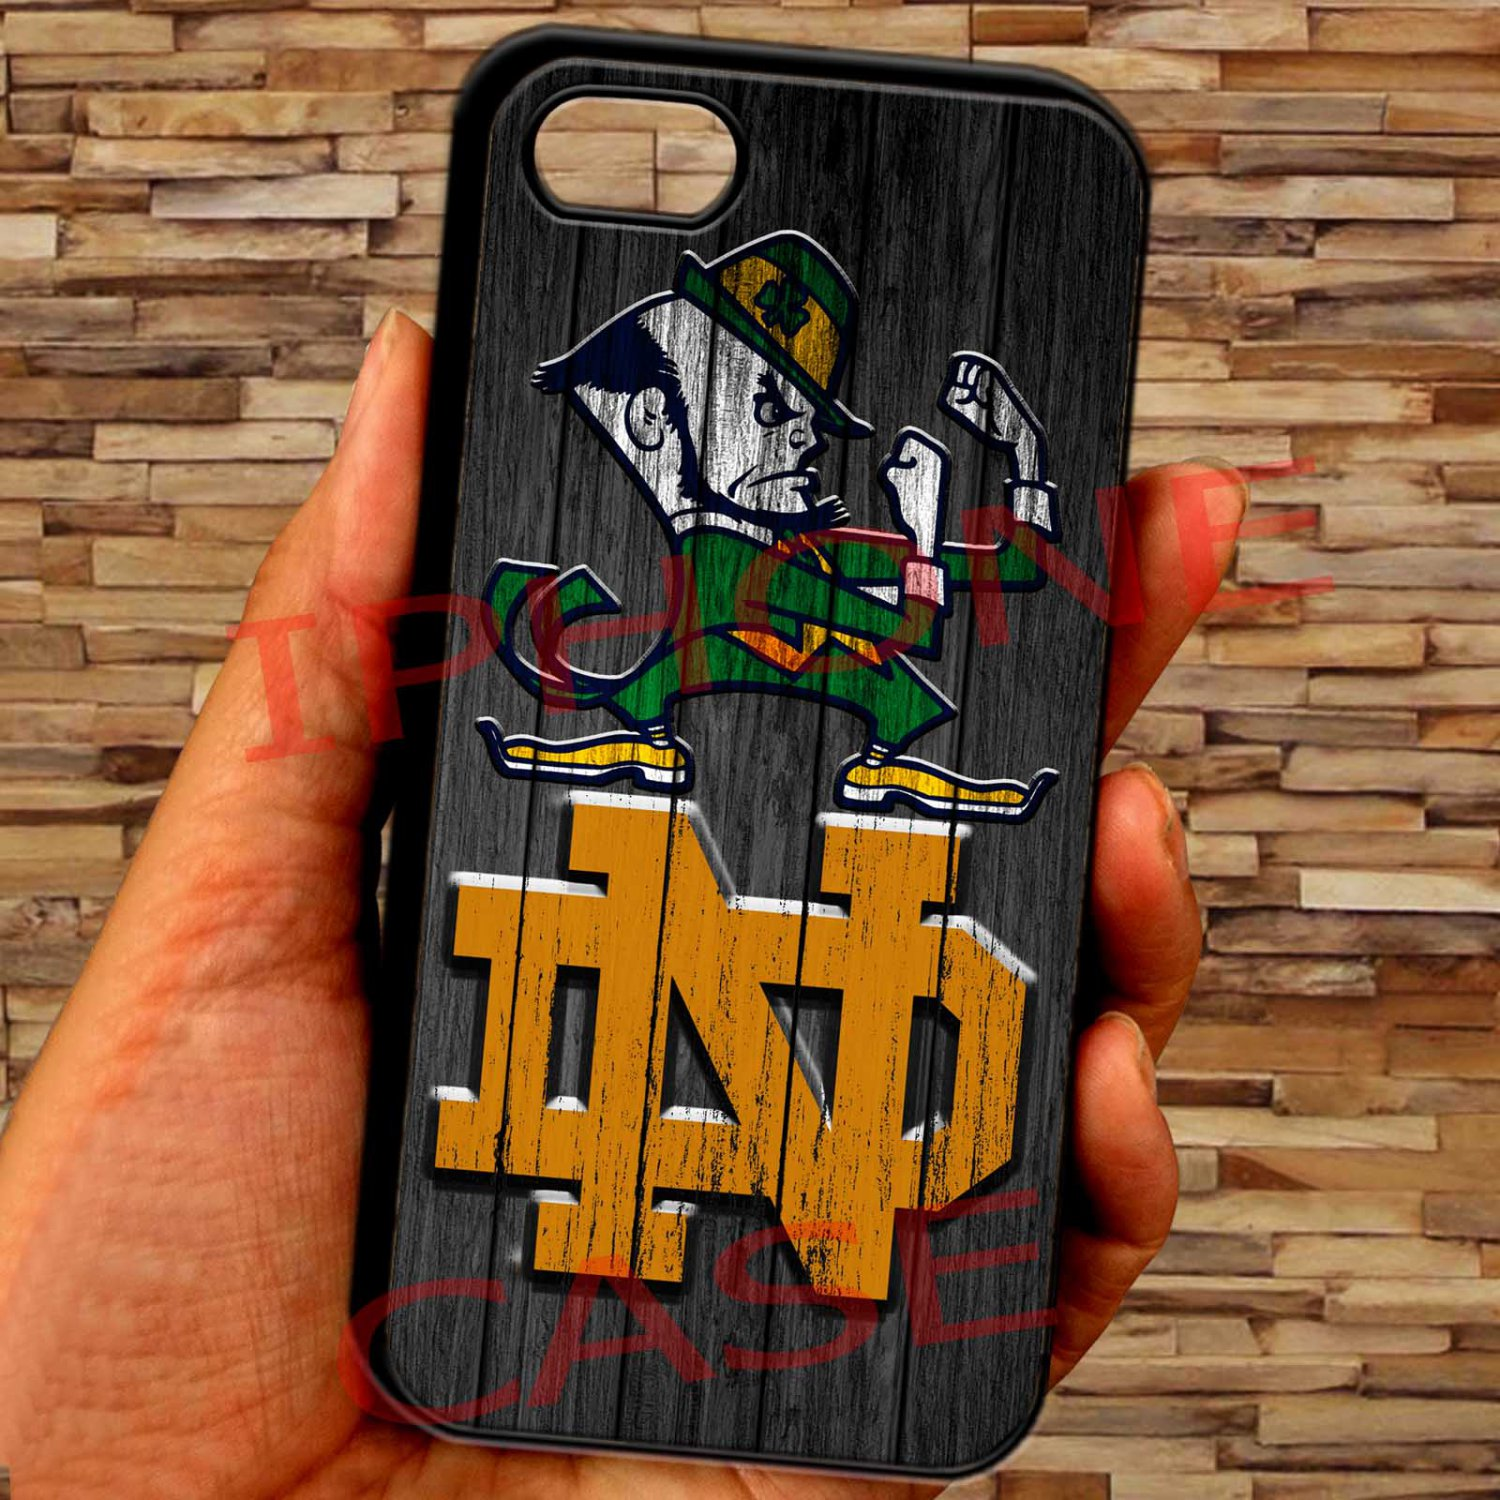 notre dame fighting irish fit for iphone 5C black case cover